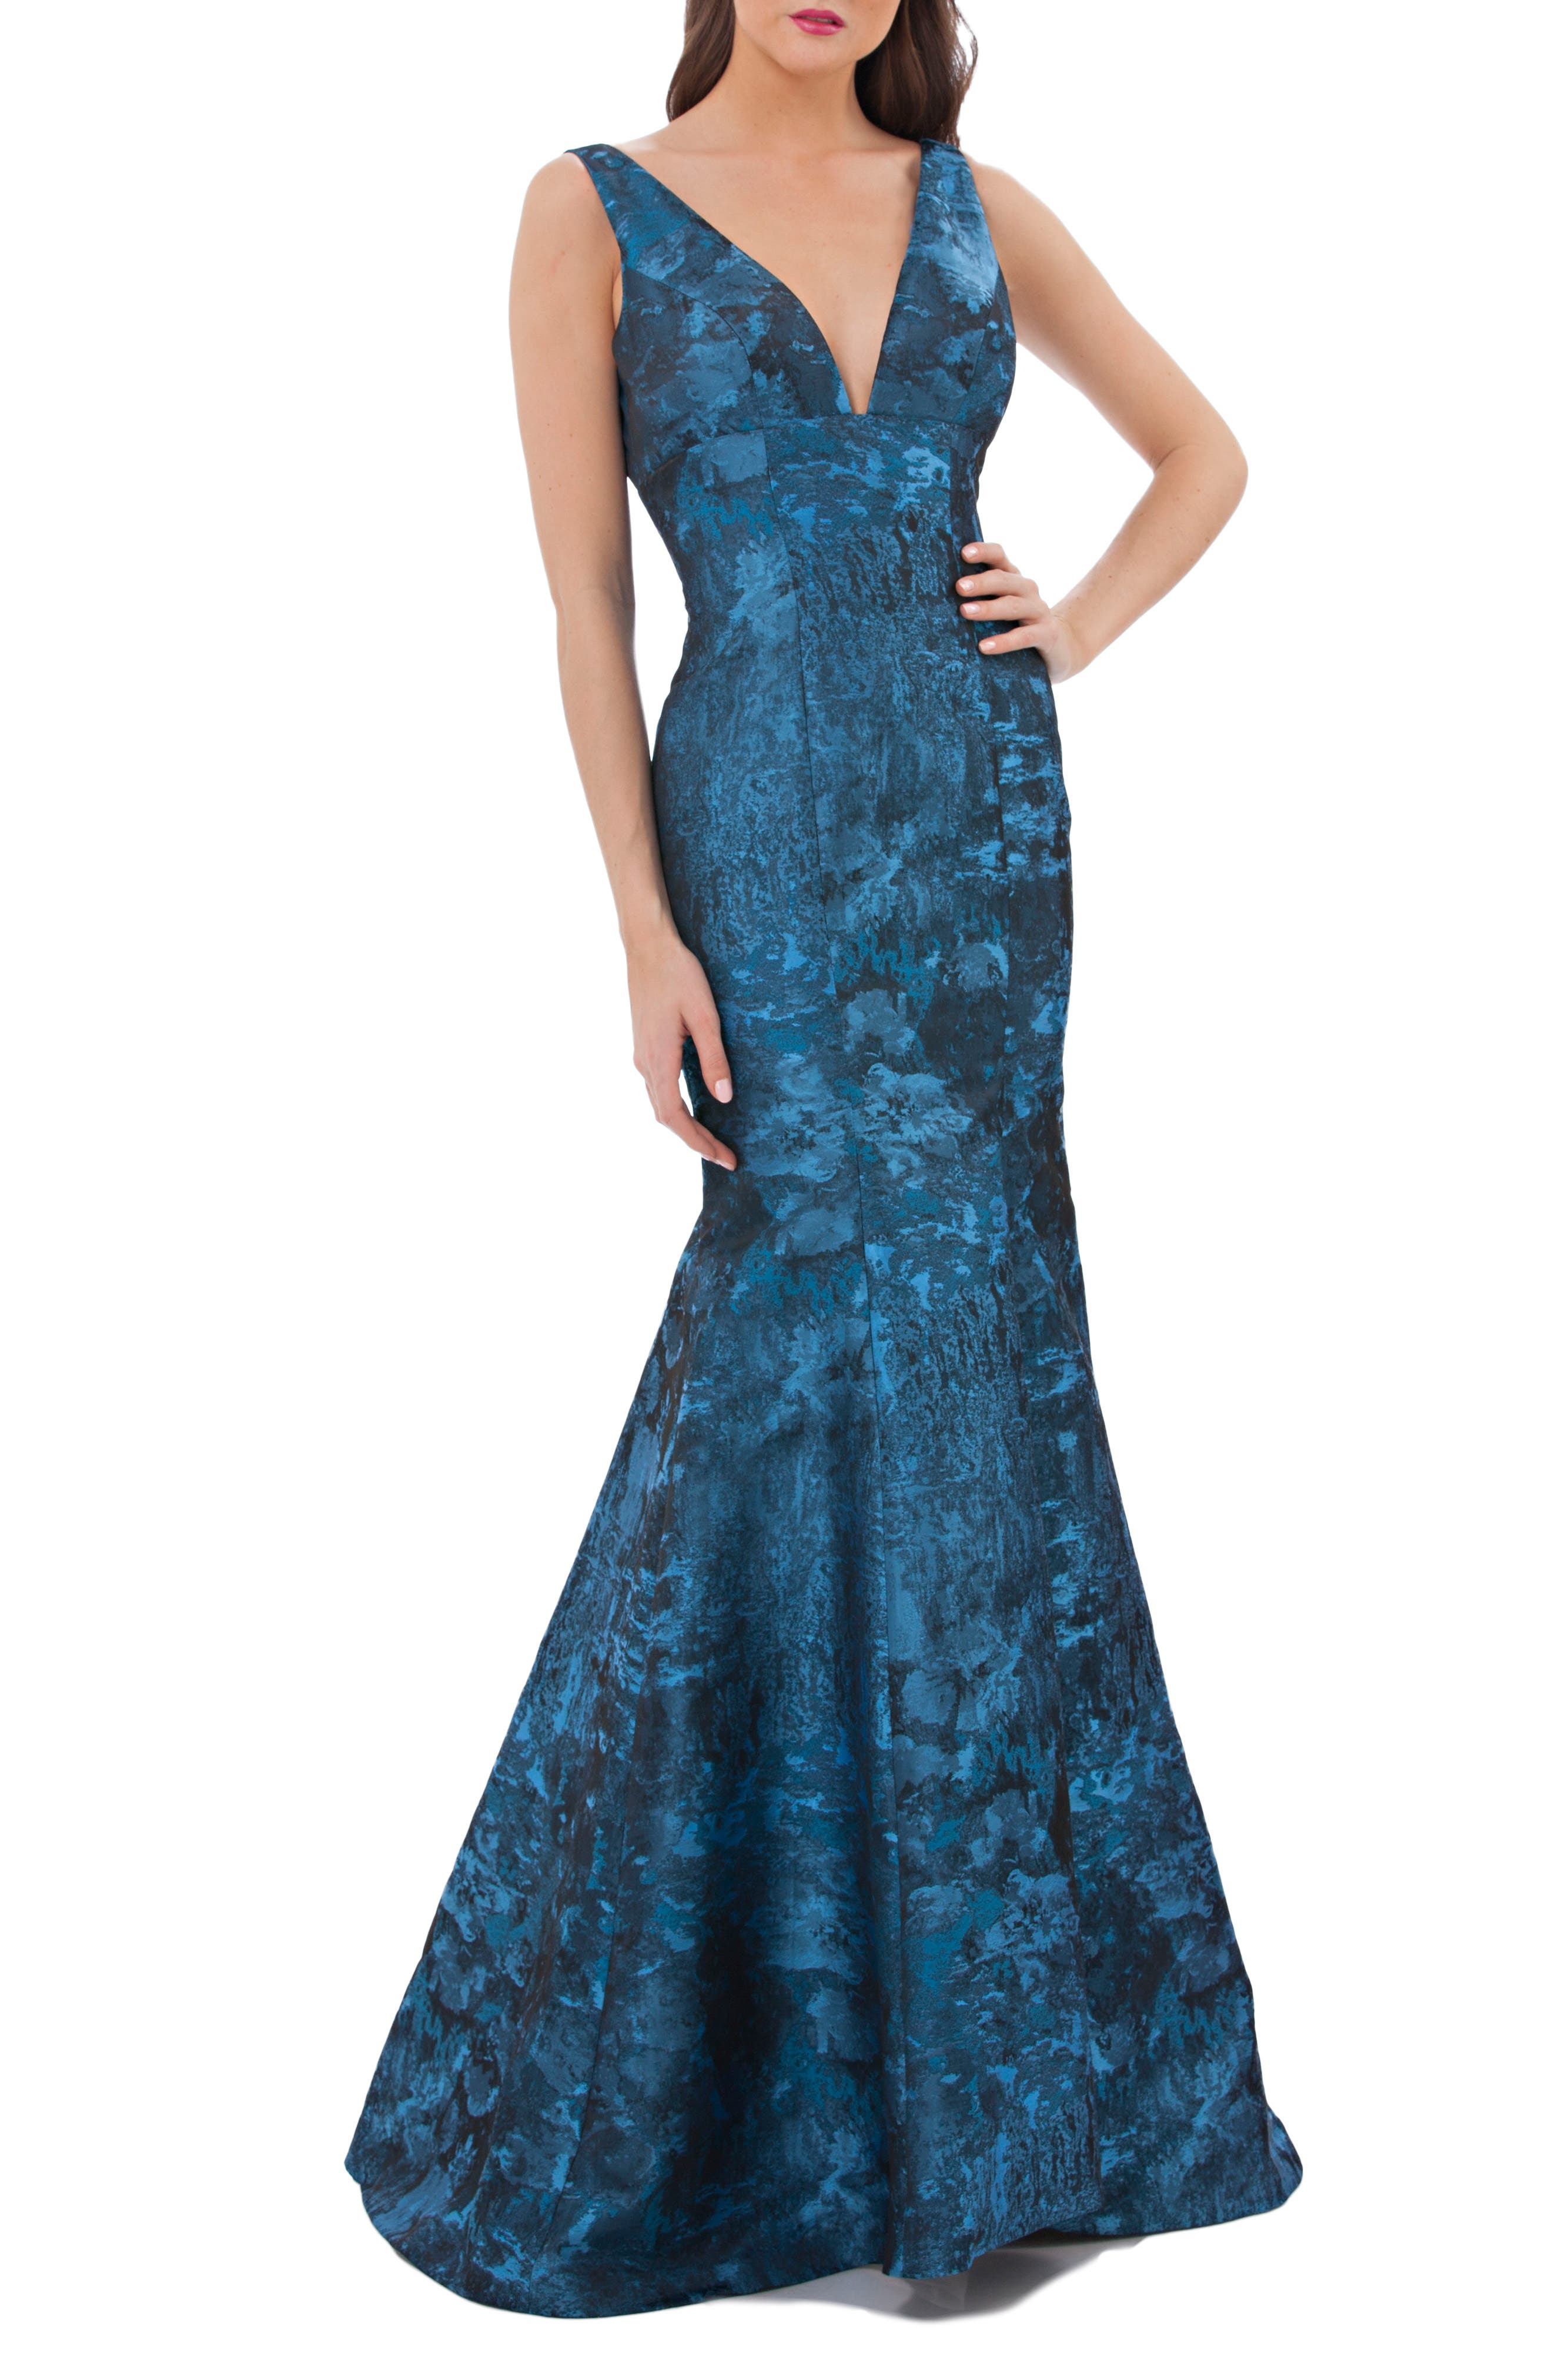 Alternate Image 1 Selected - Carmen Marc Valvo Infusion Plunging Brocade Mermaid Dress